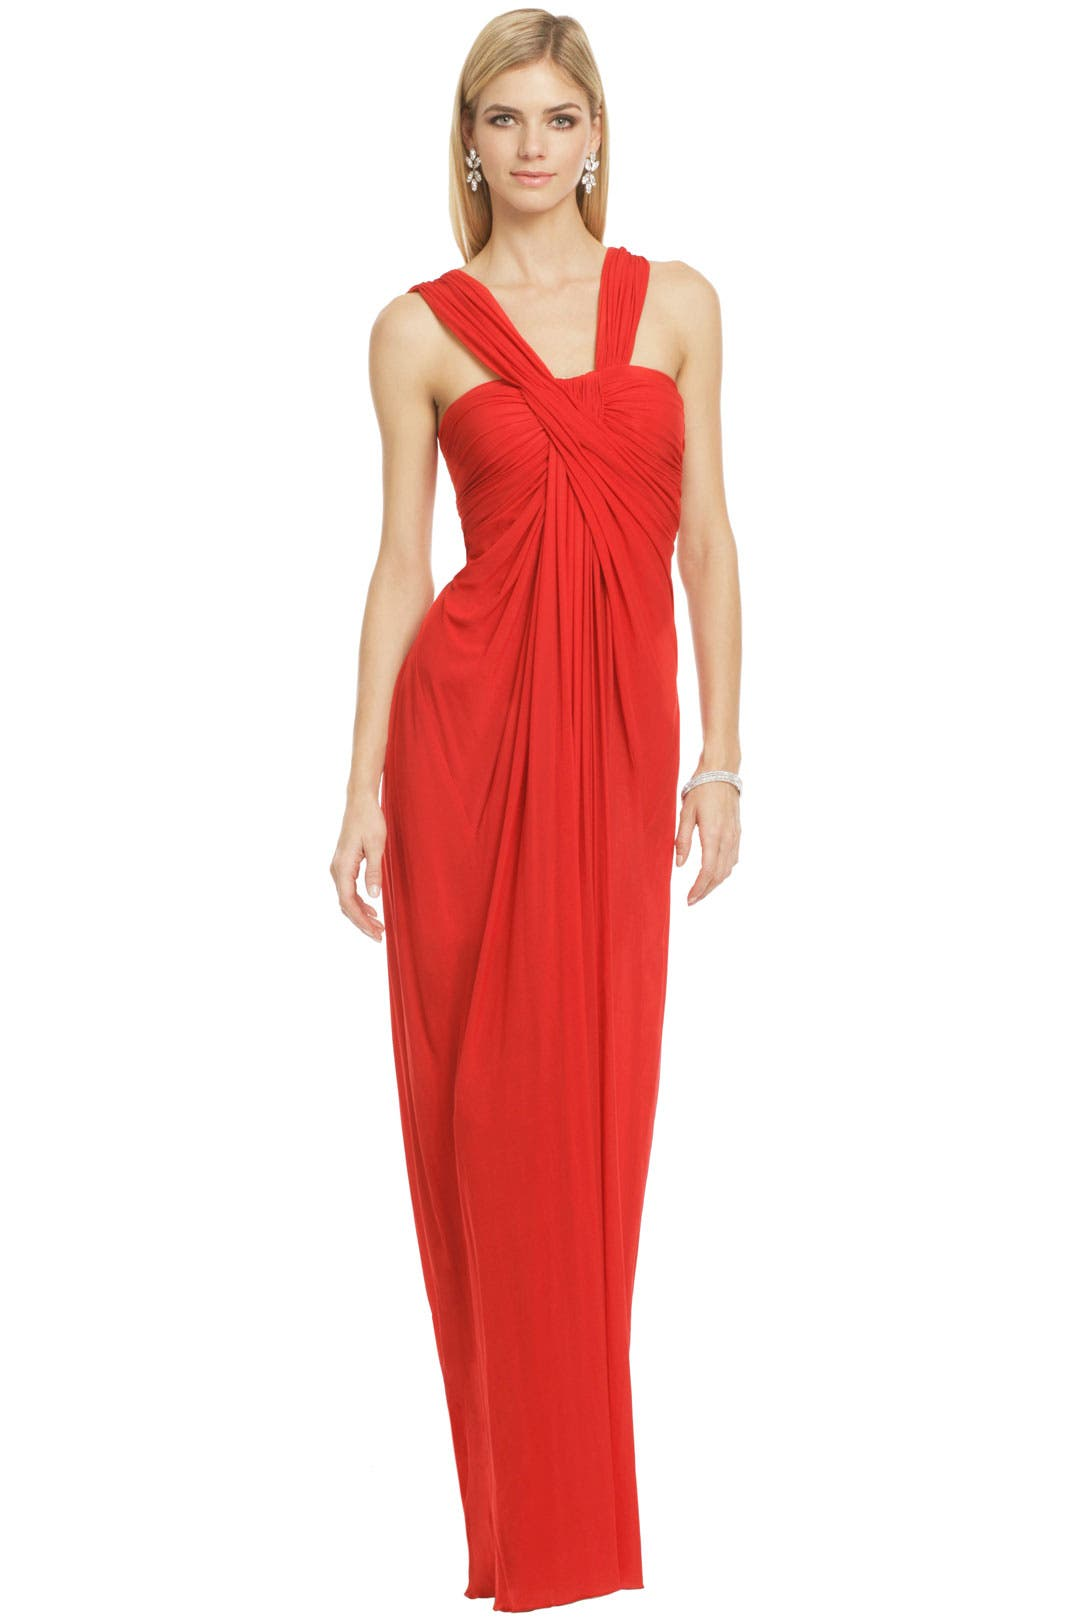 Lovers Lane Gown by Donna Karan New York